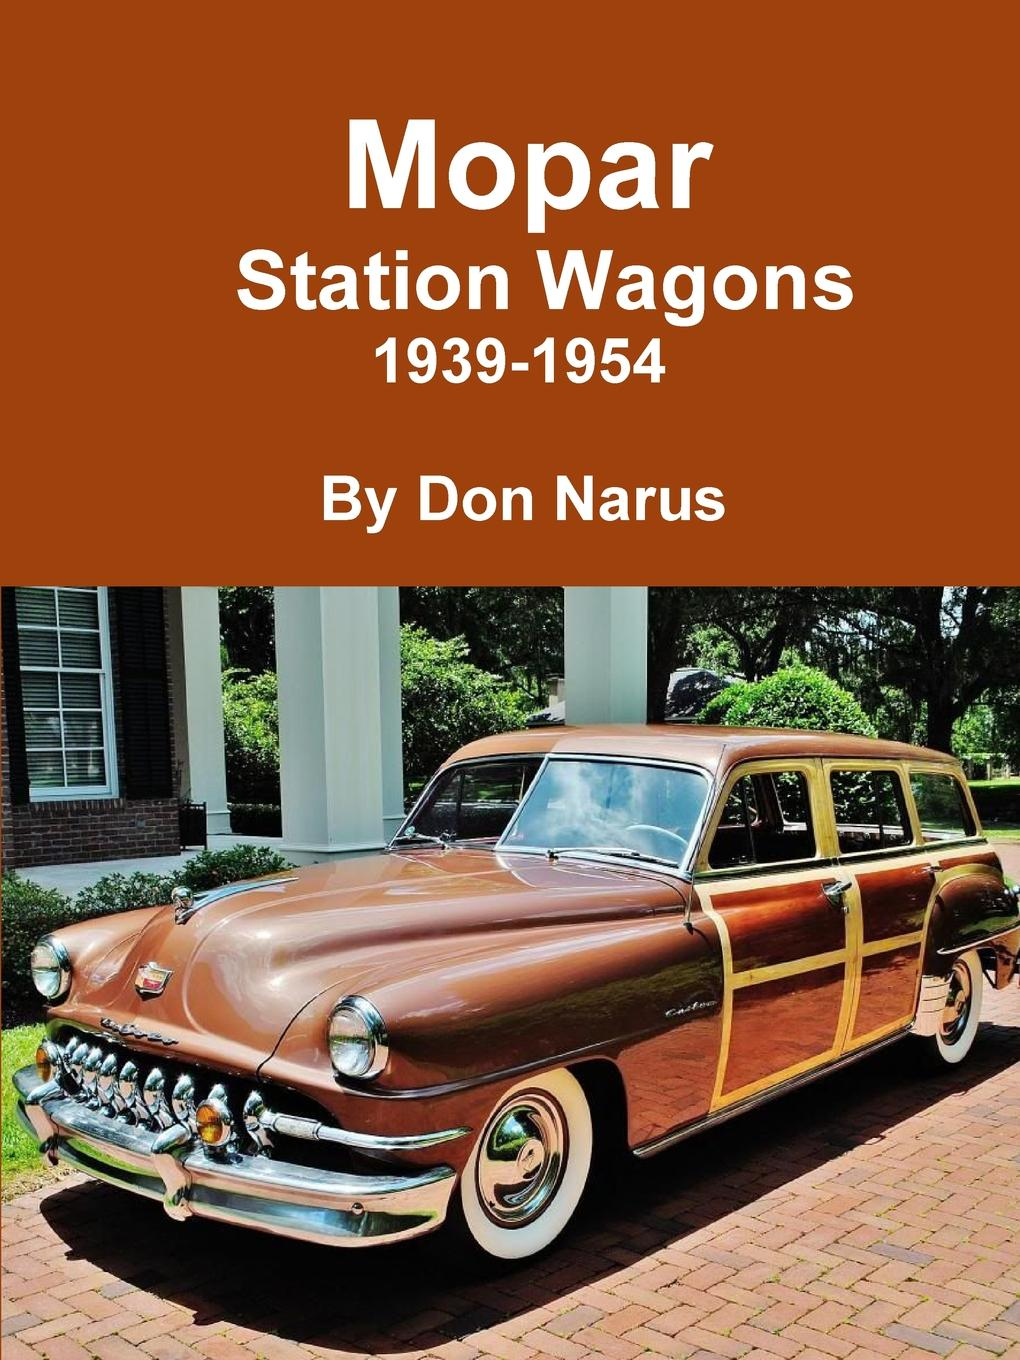 Don Narus Mopar Station Wagons- 1939-1954